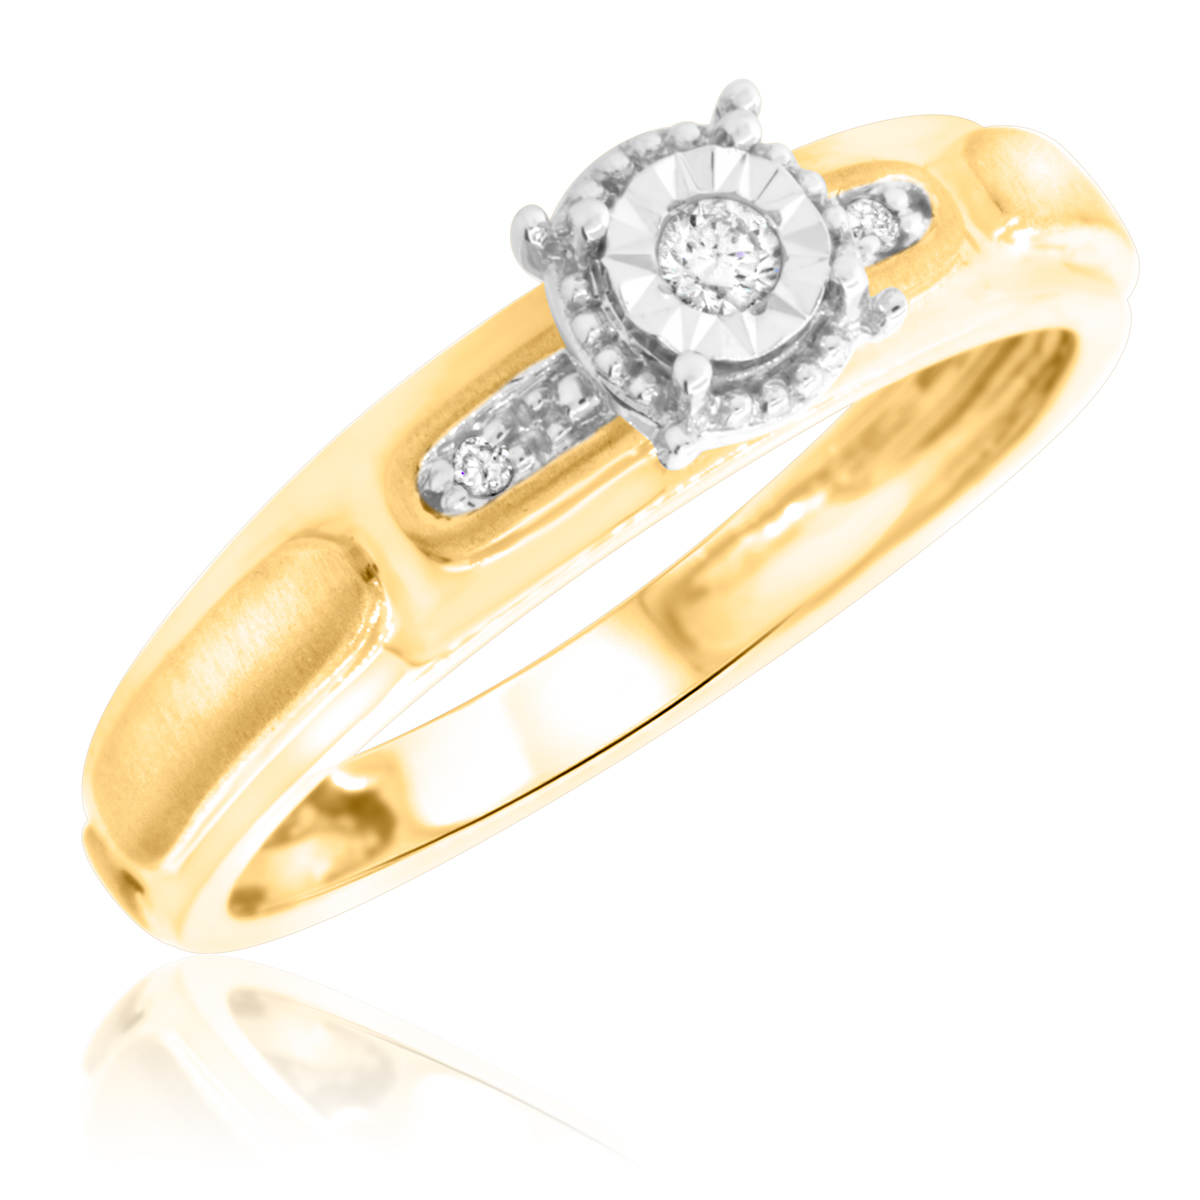 1/20 Carat T.W. Round Cut Diamond Ladies Engagement Ring 10K Yellow Gold